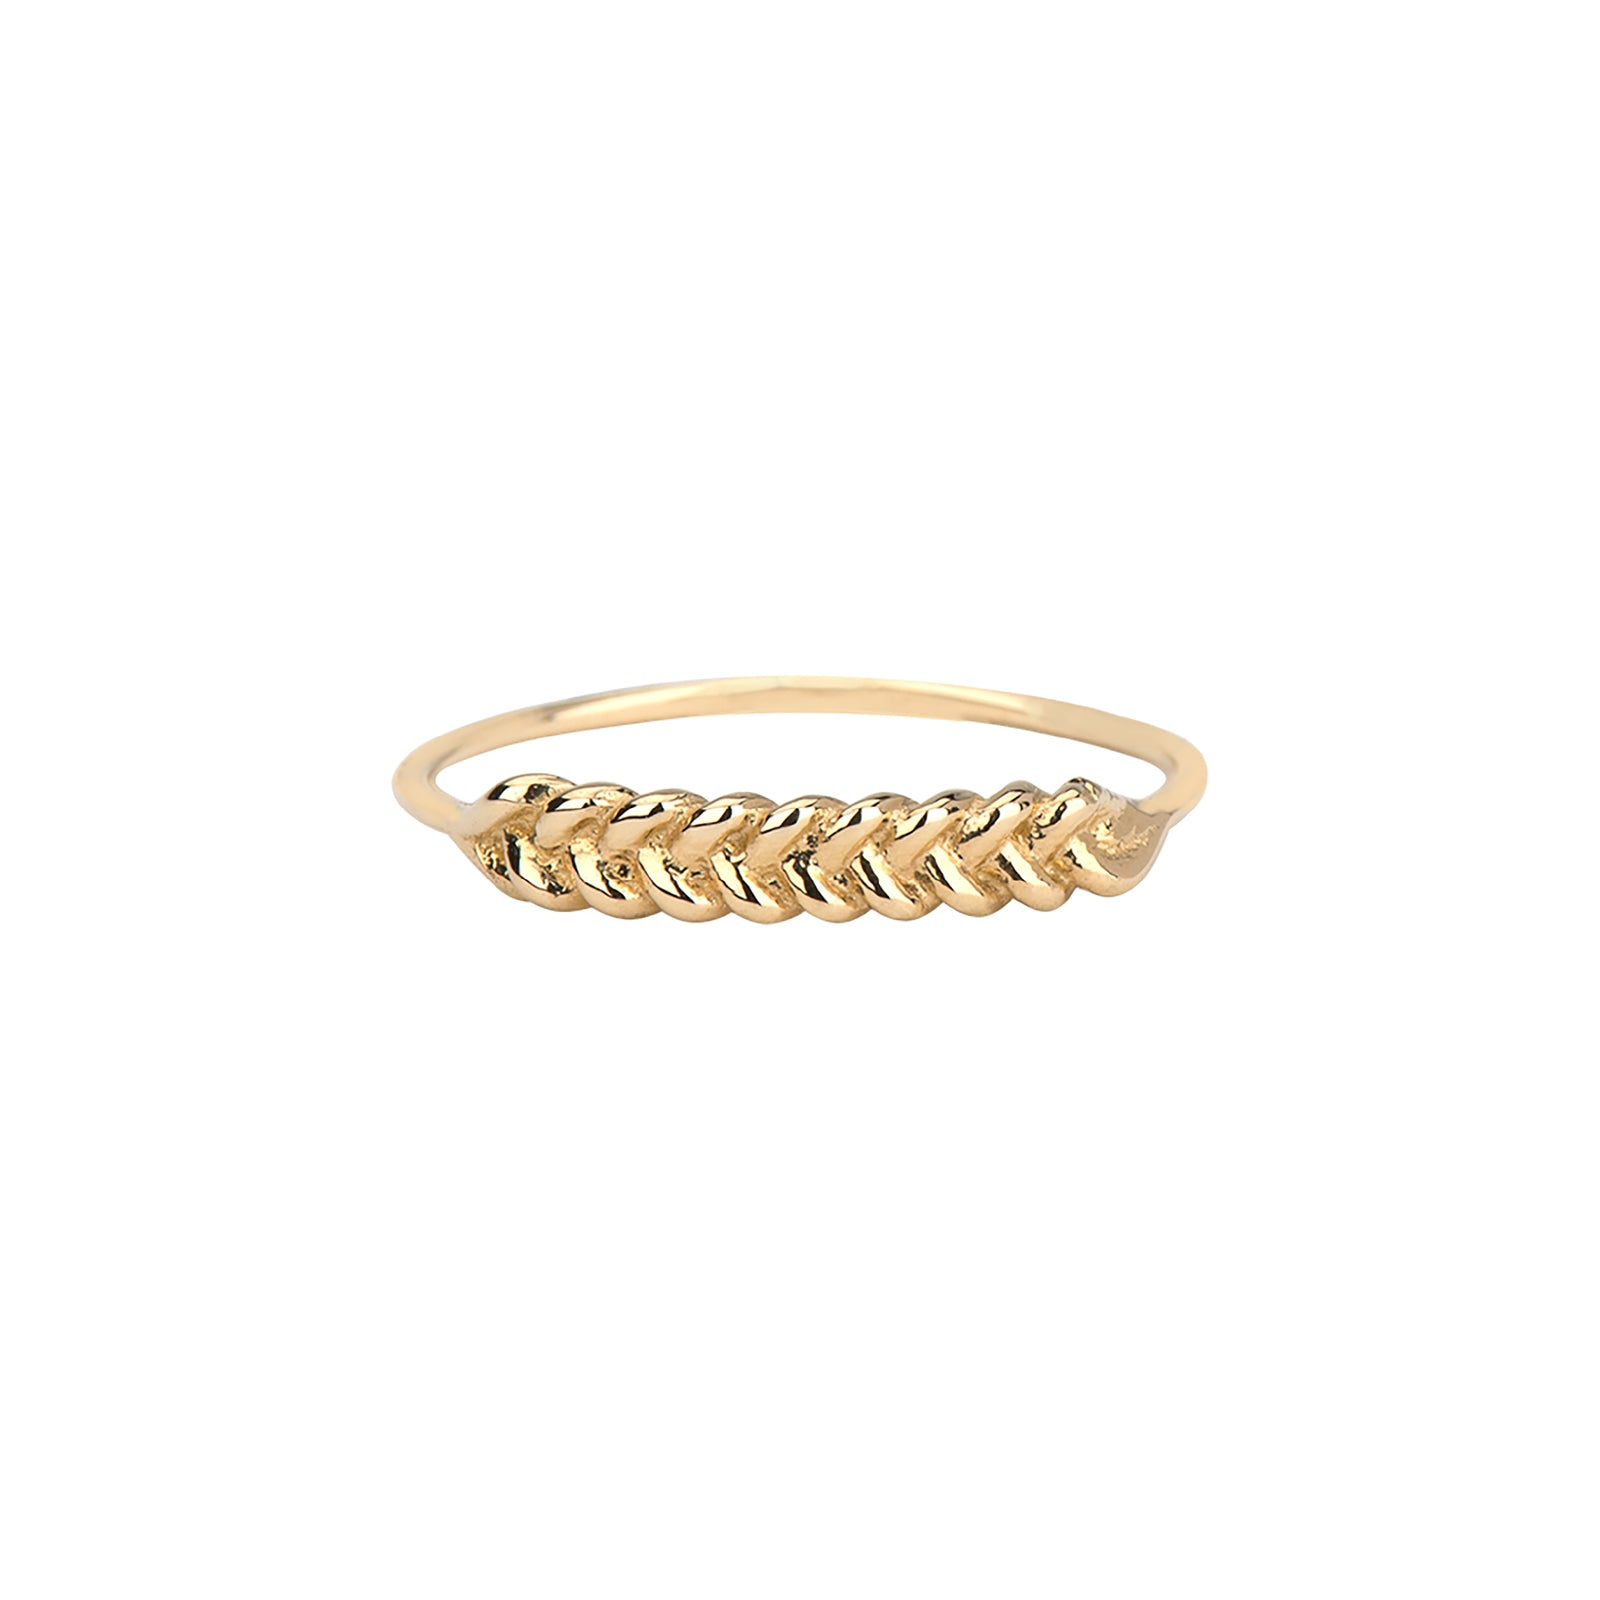 Jennie Kwon Braided Ring - Rings - Broken English Jewelry